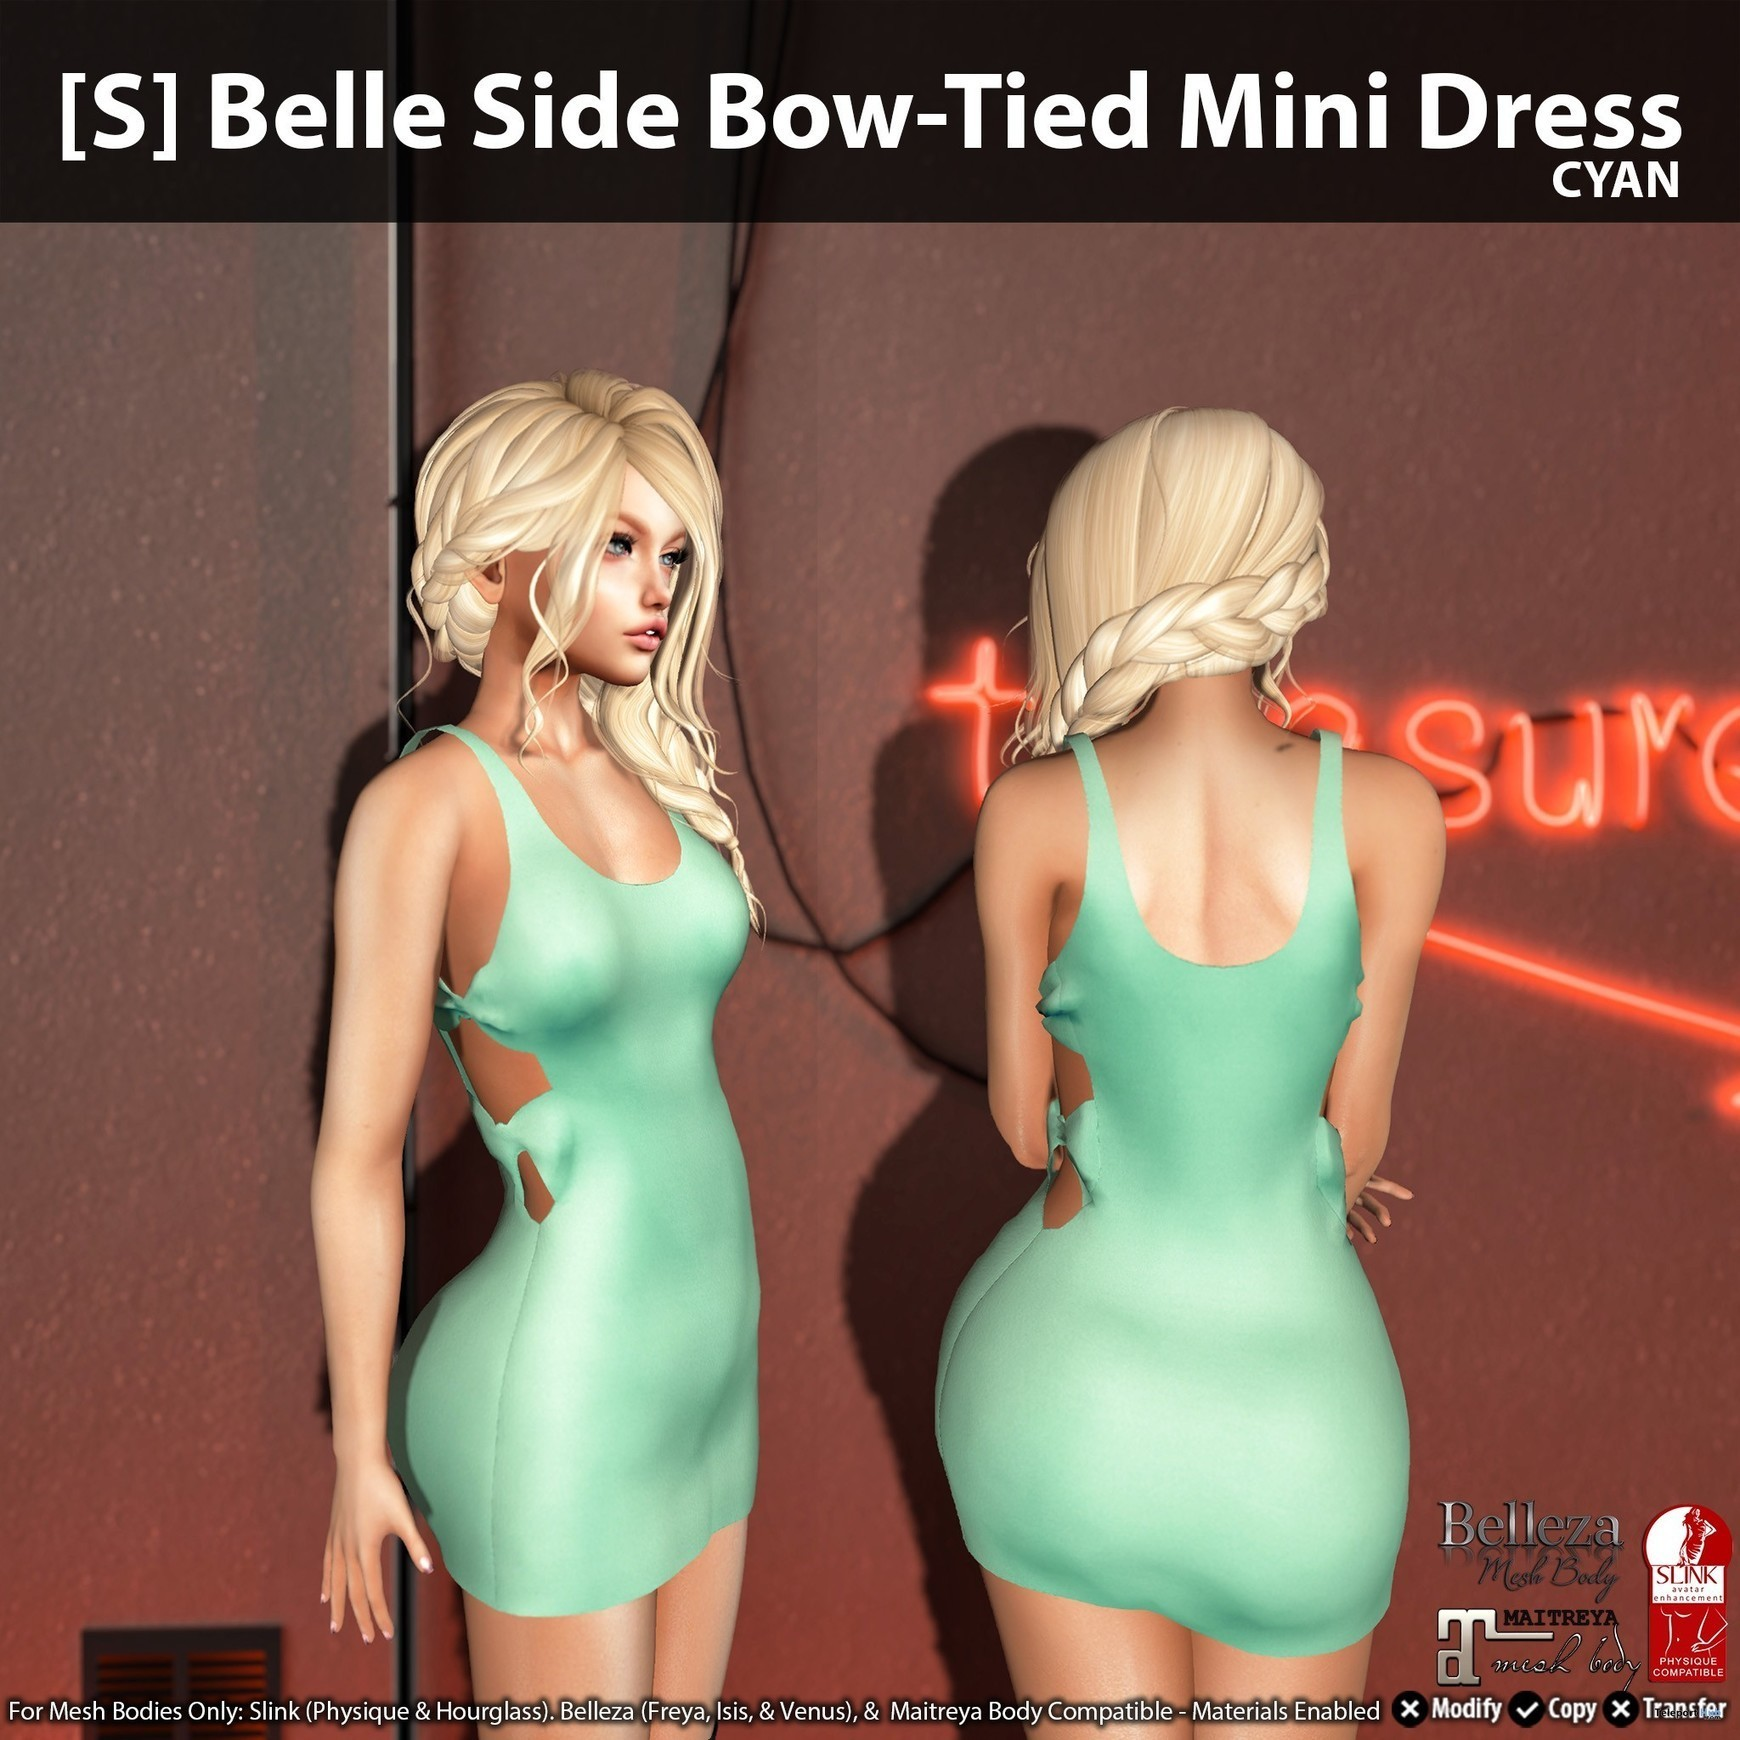 91095e0193d82 New Release   S  Belle Side Bow-Tied Mini Dress by  satus Inc